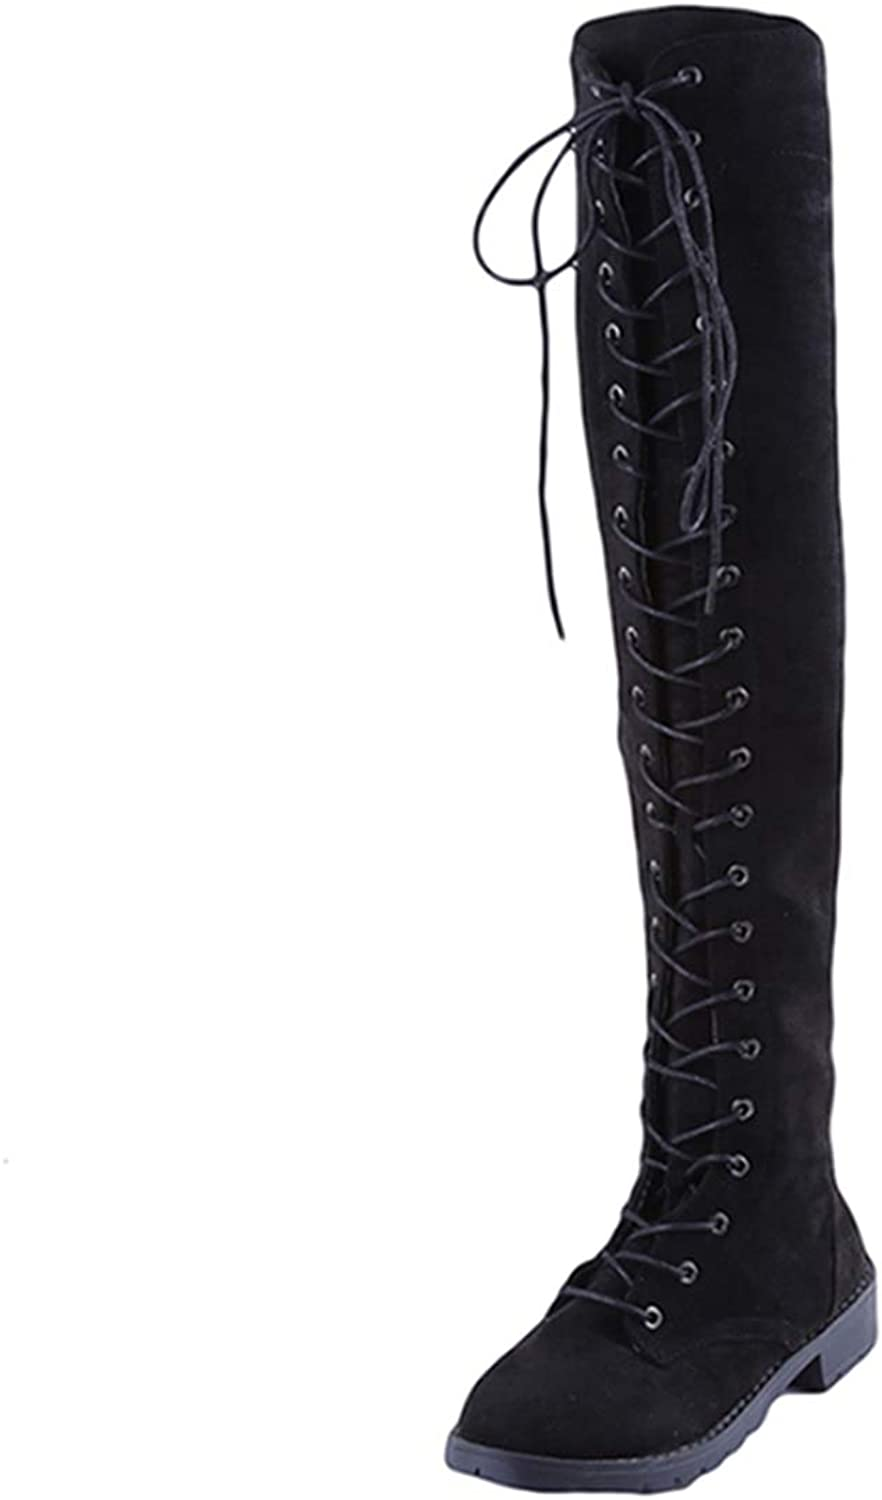 DOSOMI Womens Sexy Suede Lace Up Zipped Over The Knee Thigh High Boots Flats Long Booties